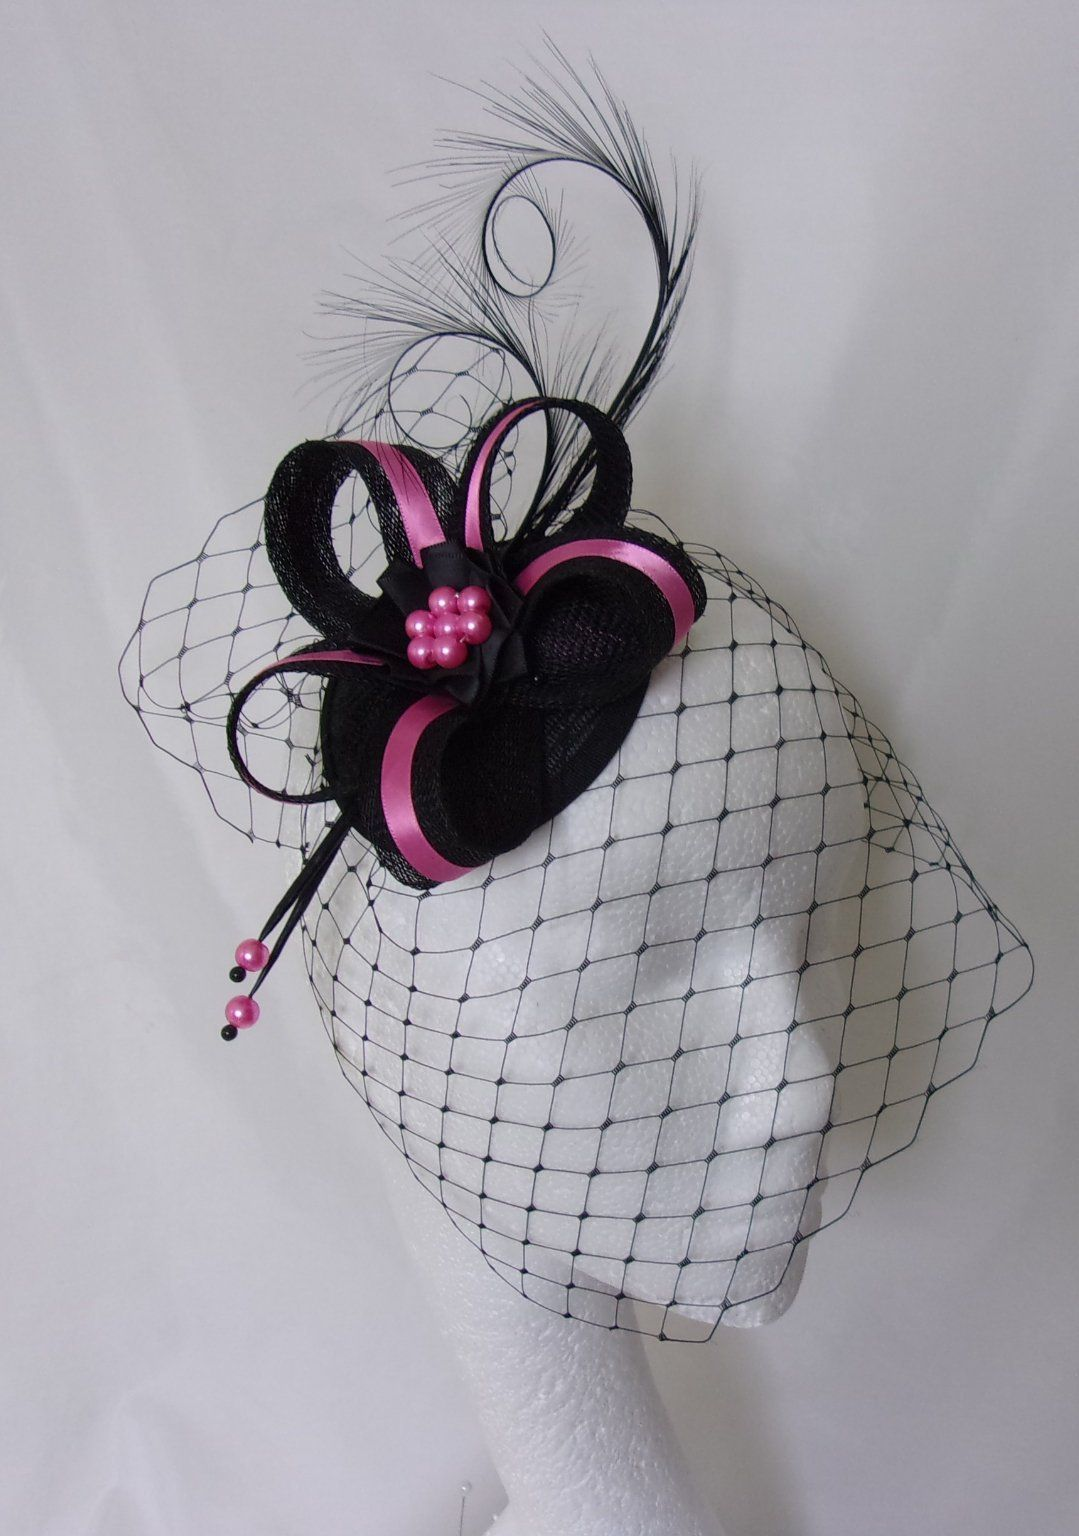 467cef56889a6 Hot Fuchsia Pink and Black Veiled Fascinator with Pheasant Curl ...